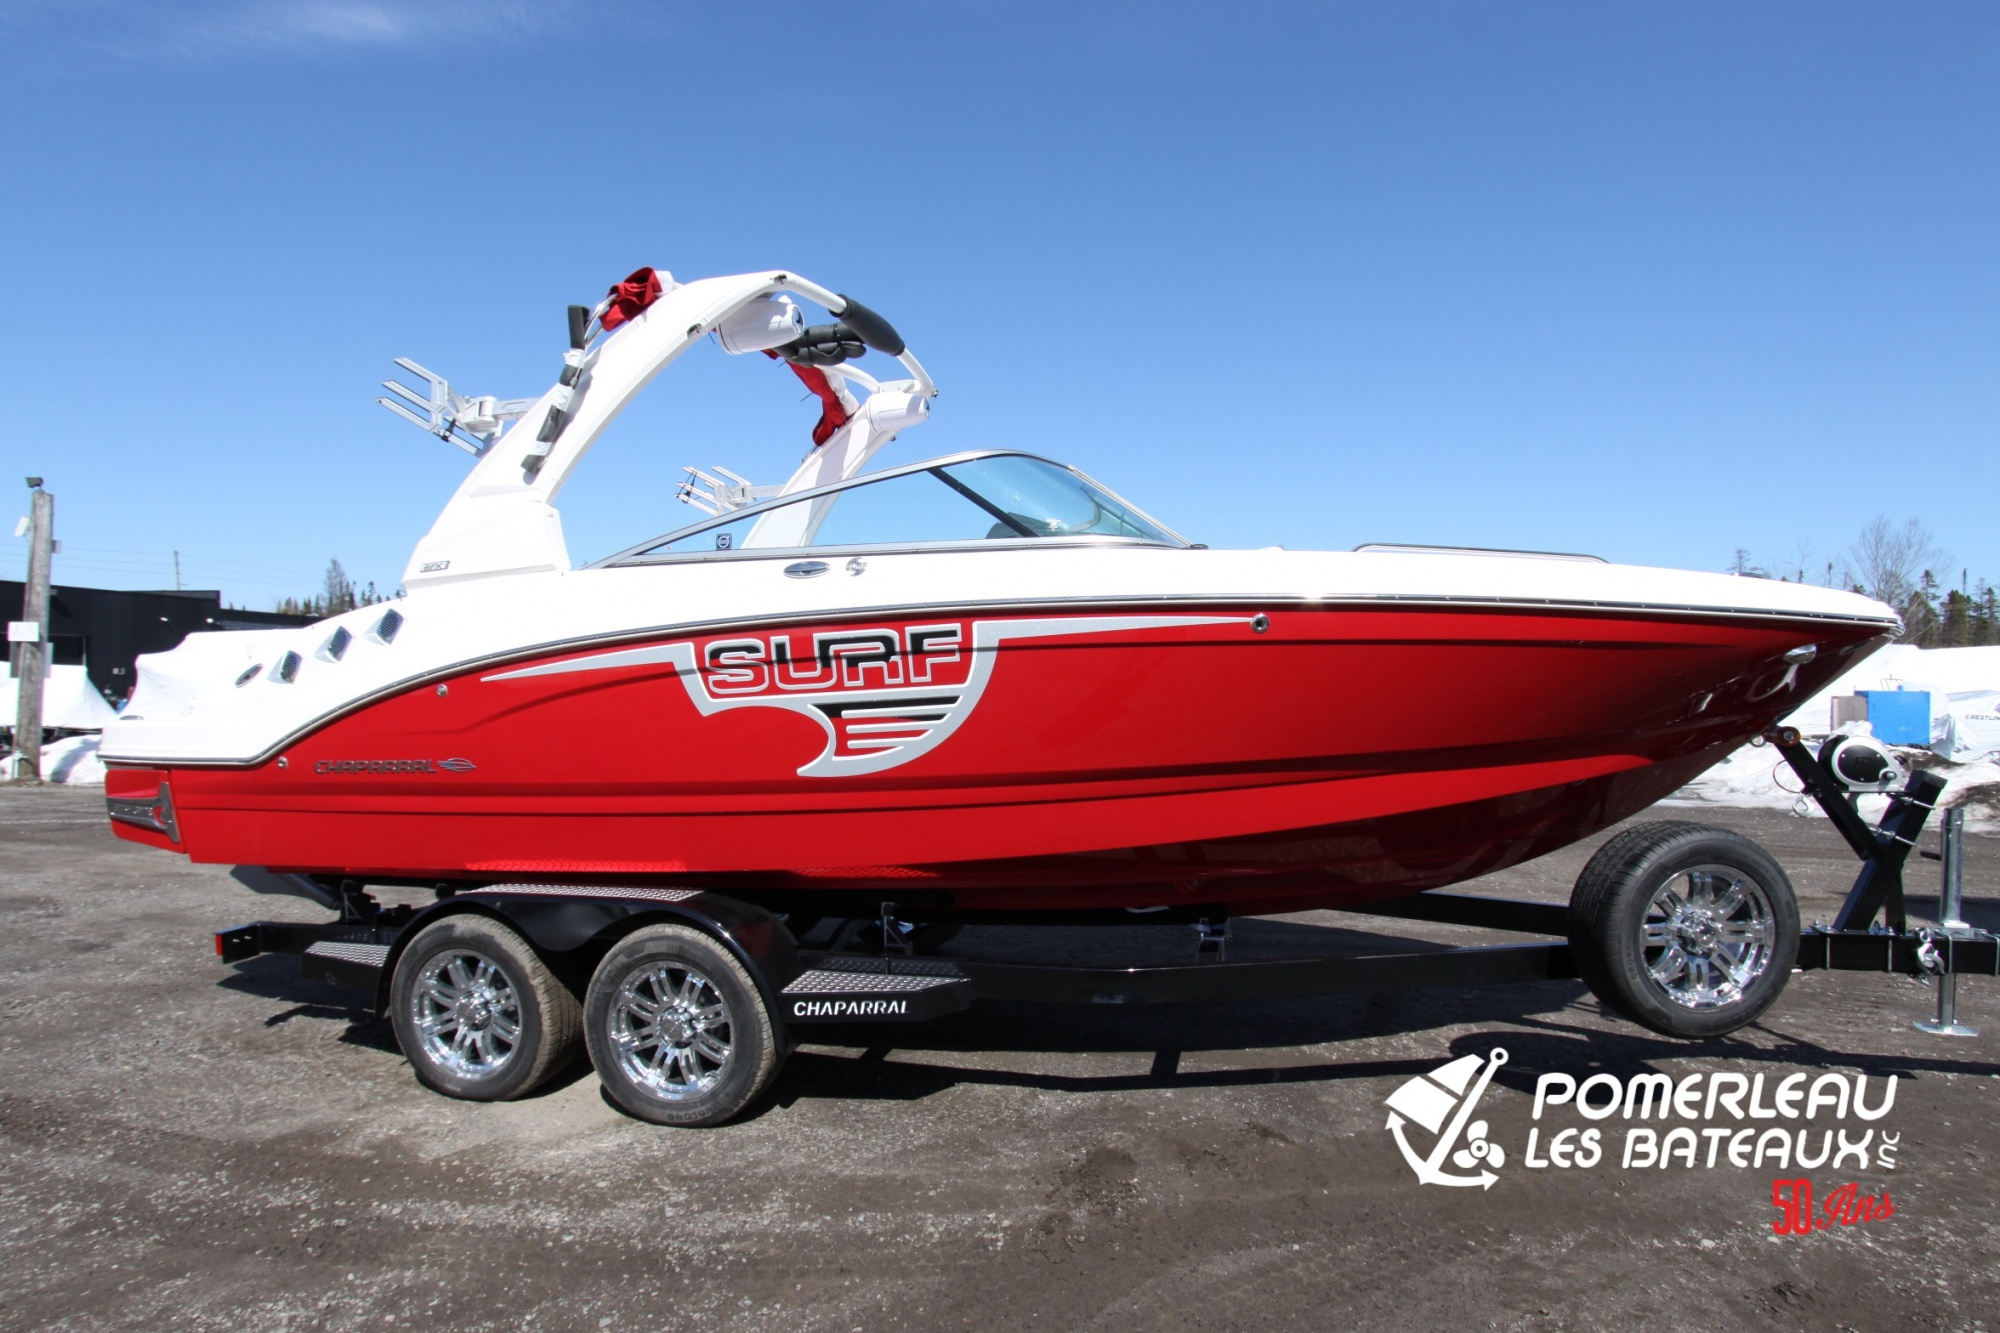 Chaparral 24 Surf - IMG_4995